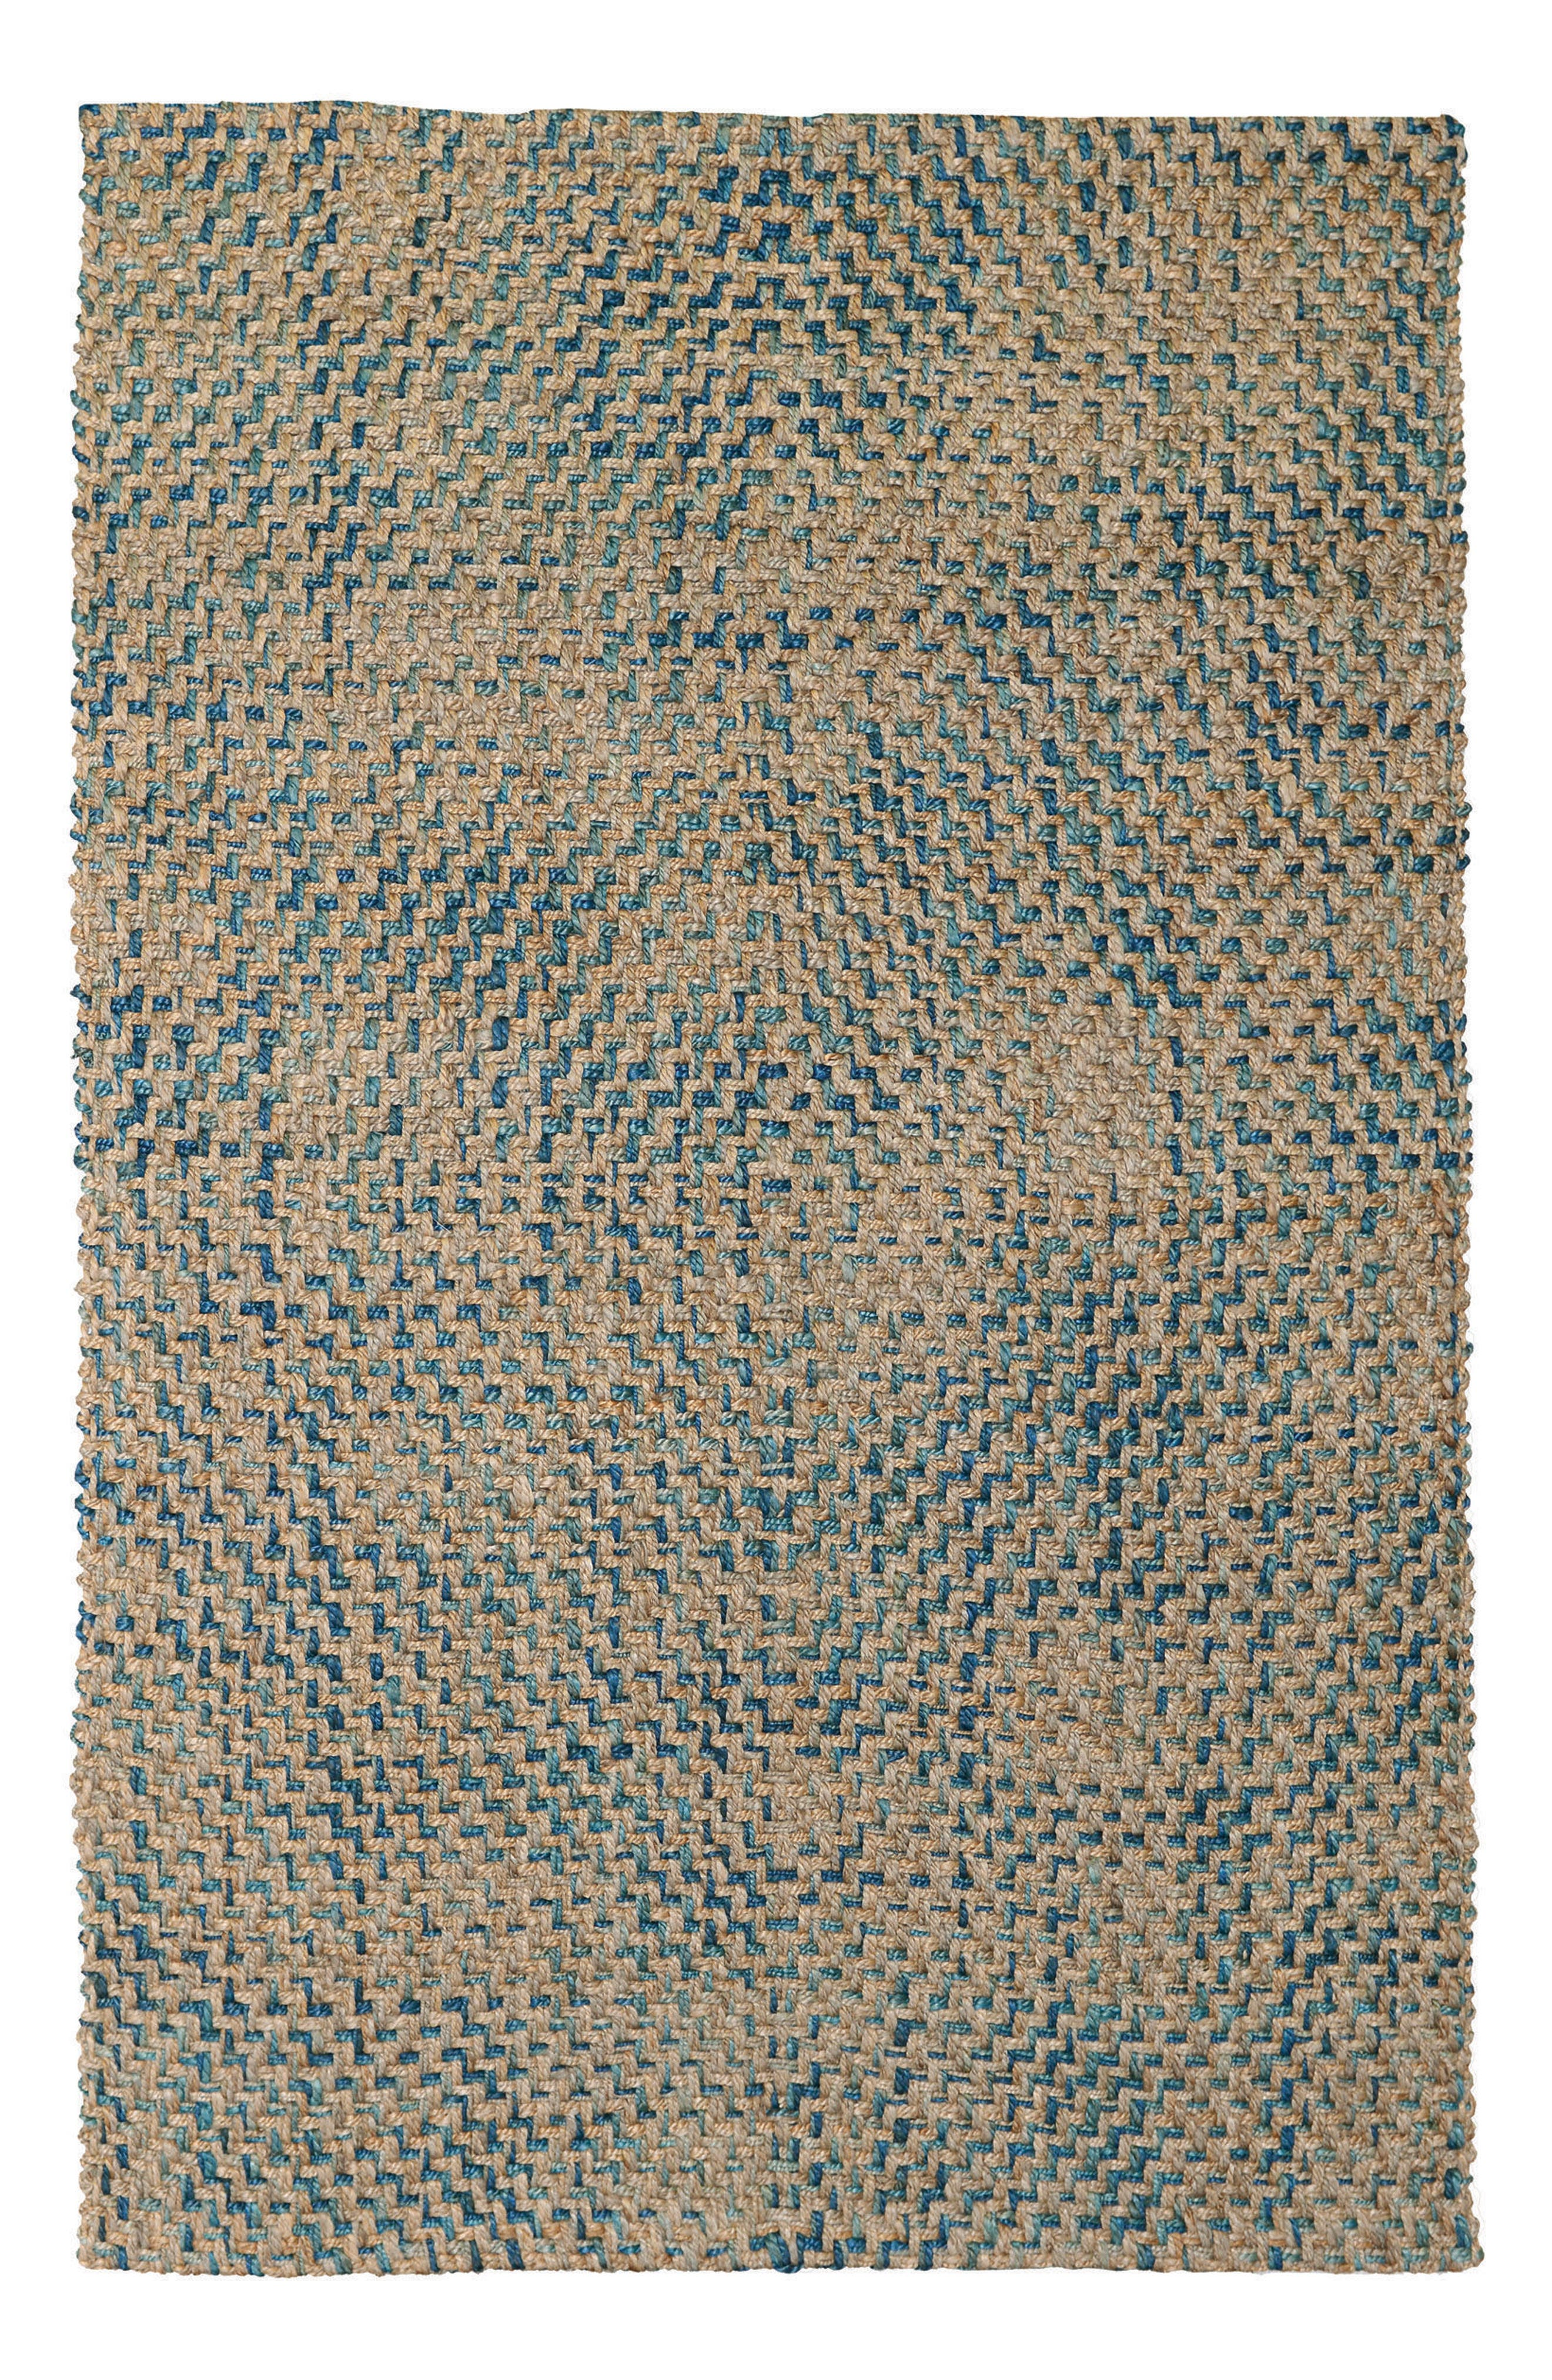 Ladera Handwoven Rug,                         Main,                         color, Navy/ Turquoise